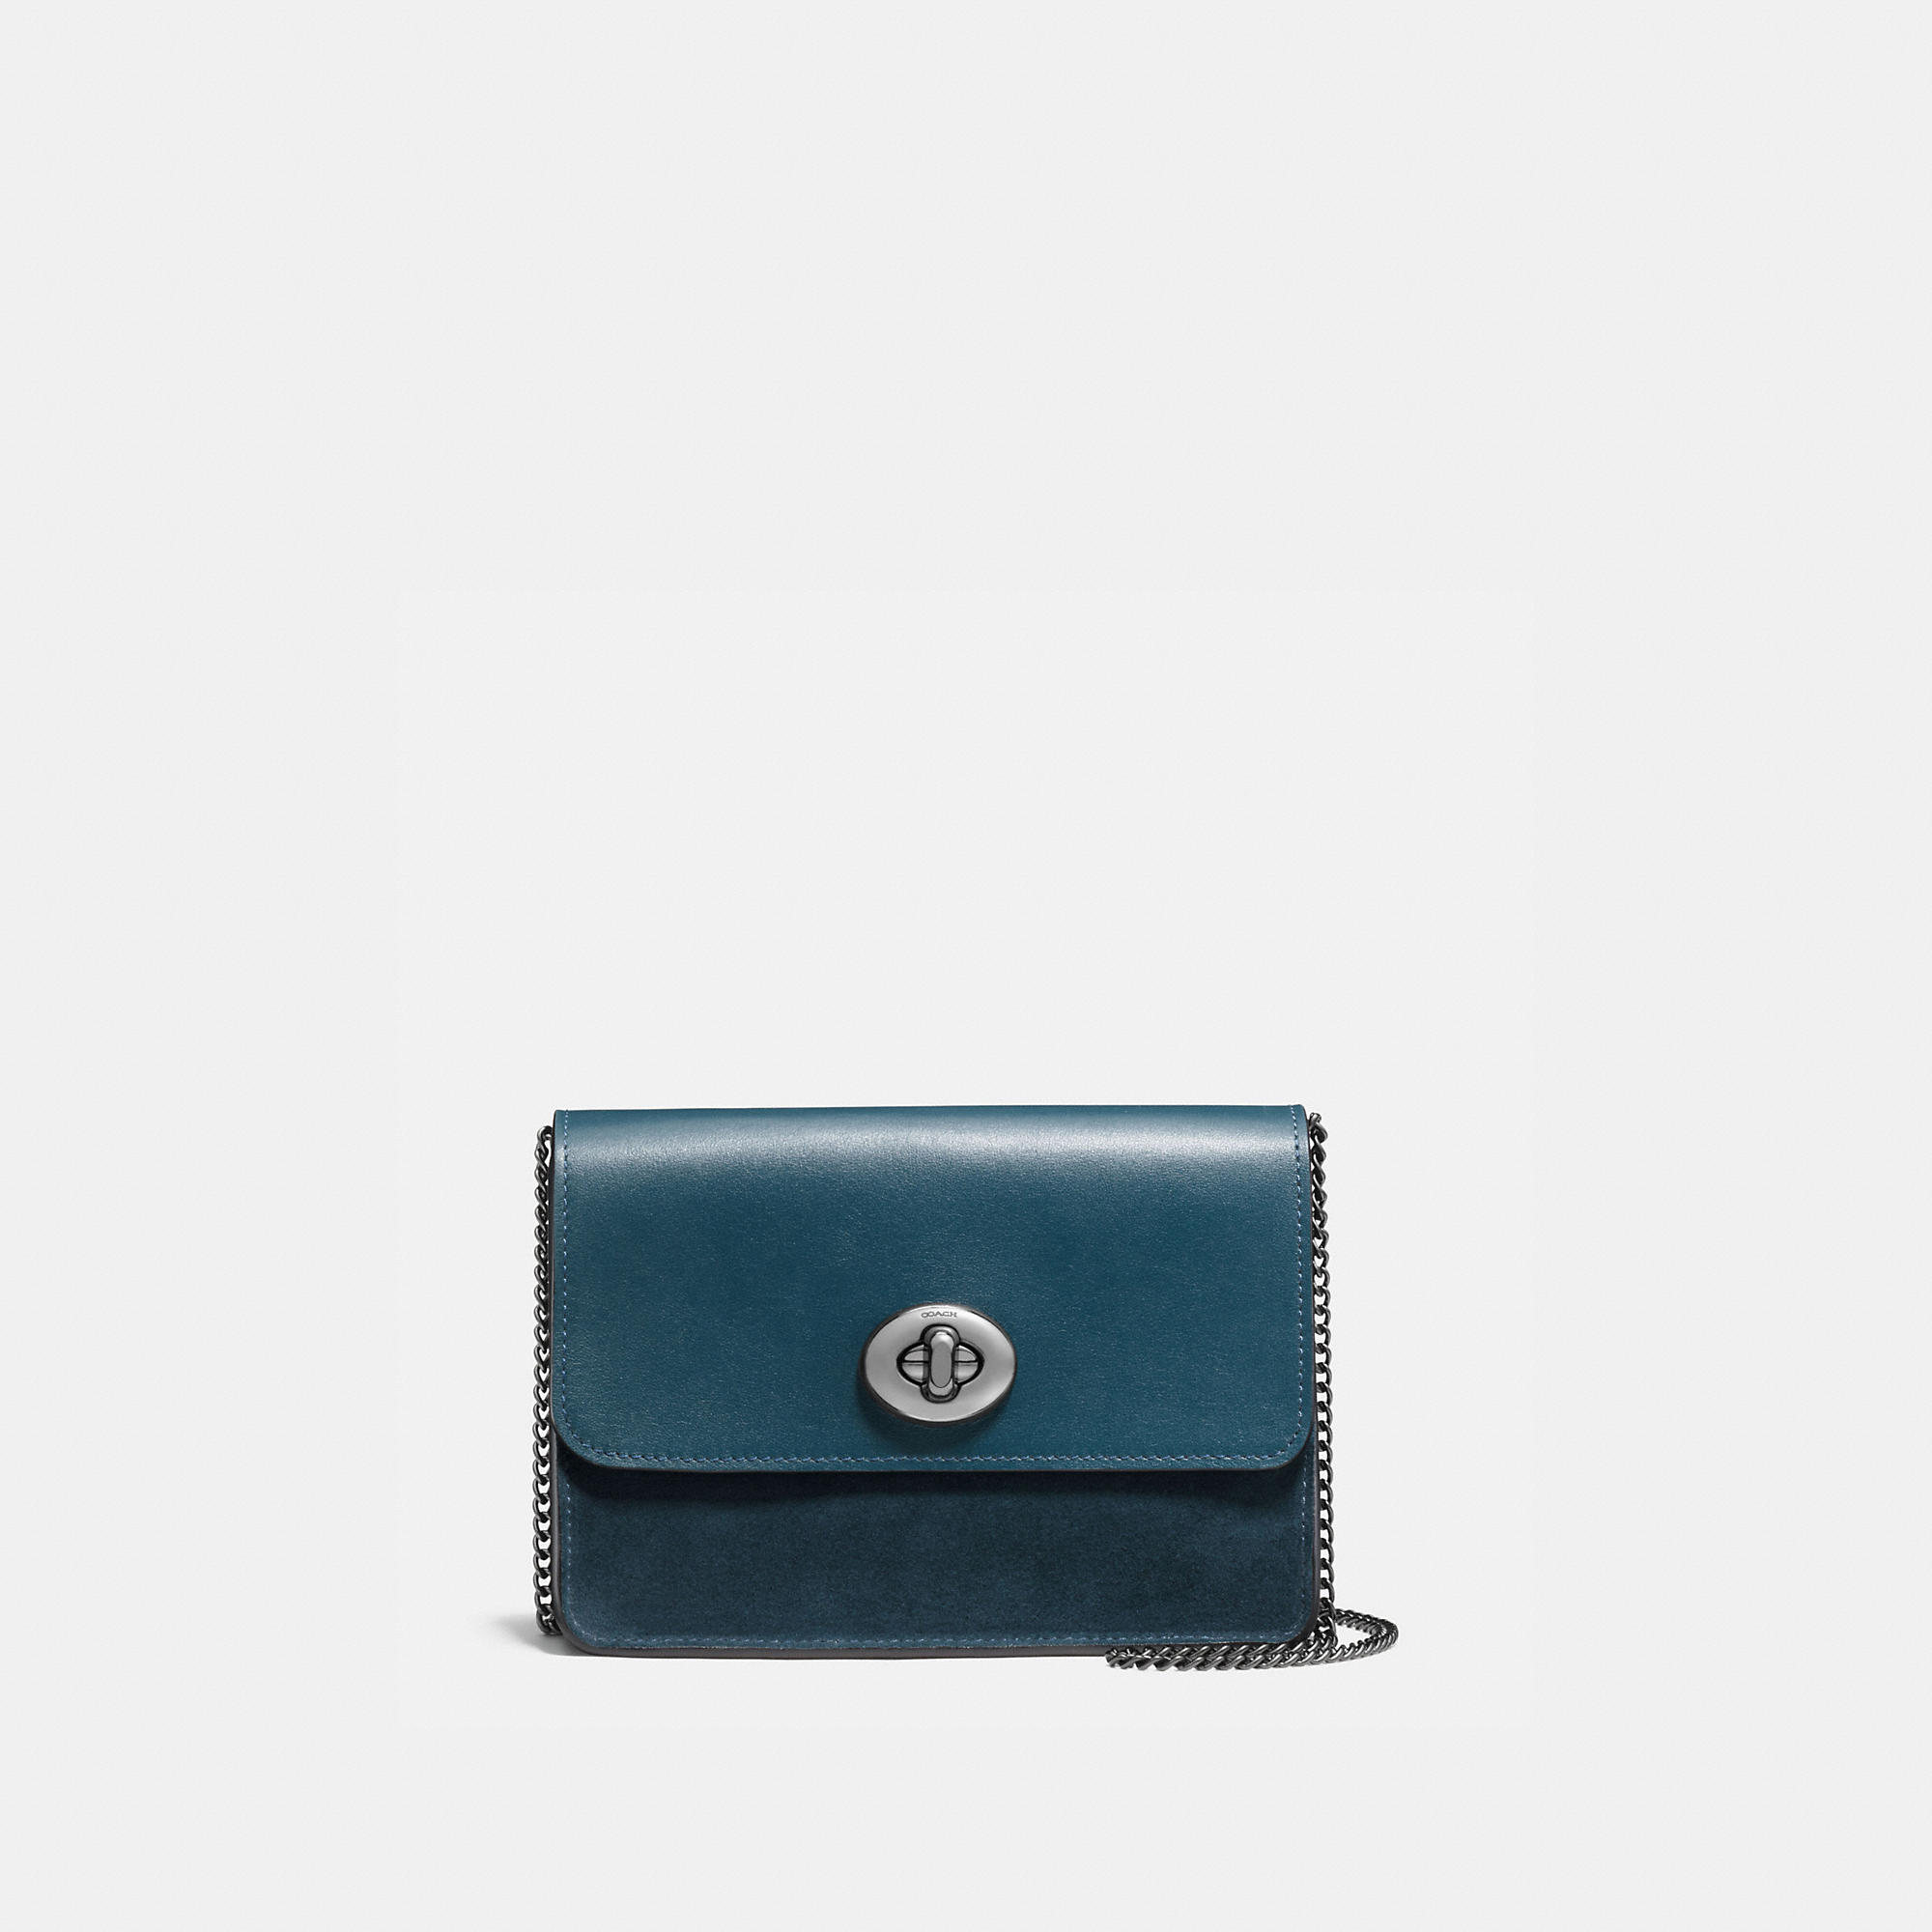 Coach Bowery Crossbody In Mixed Leathers